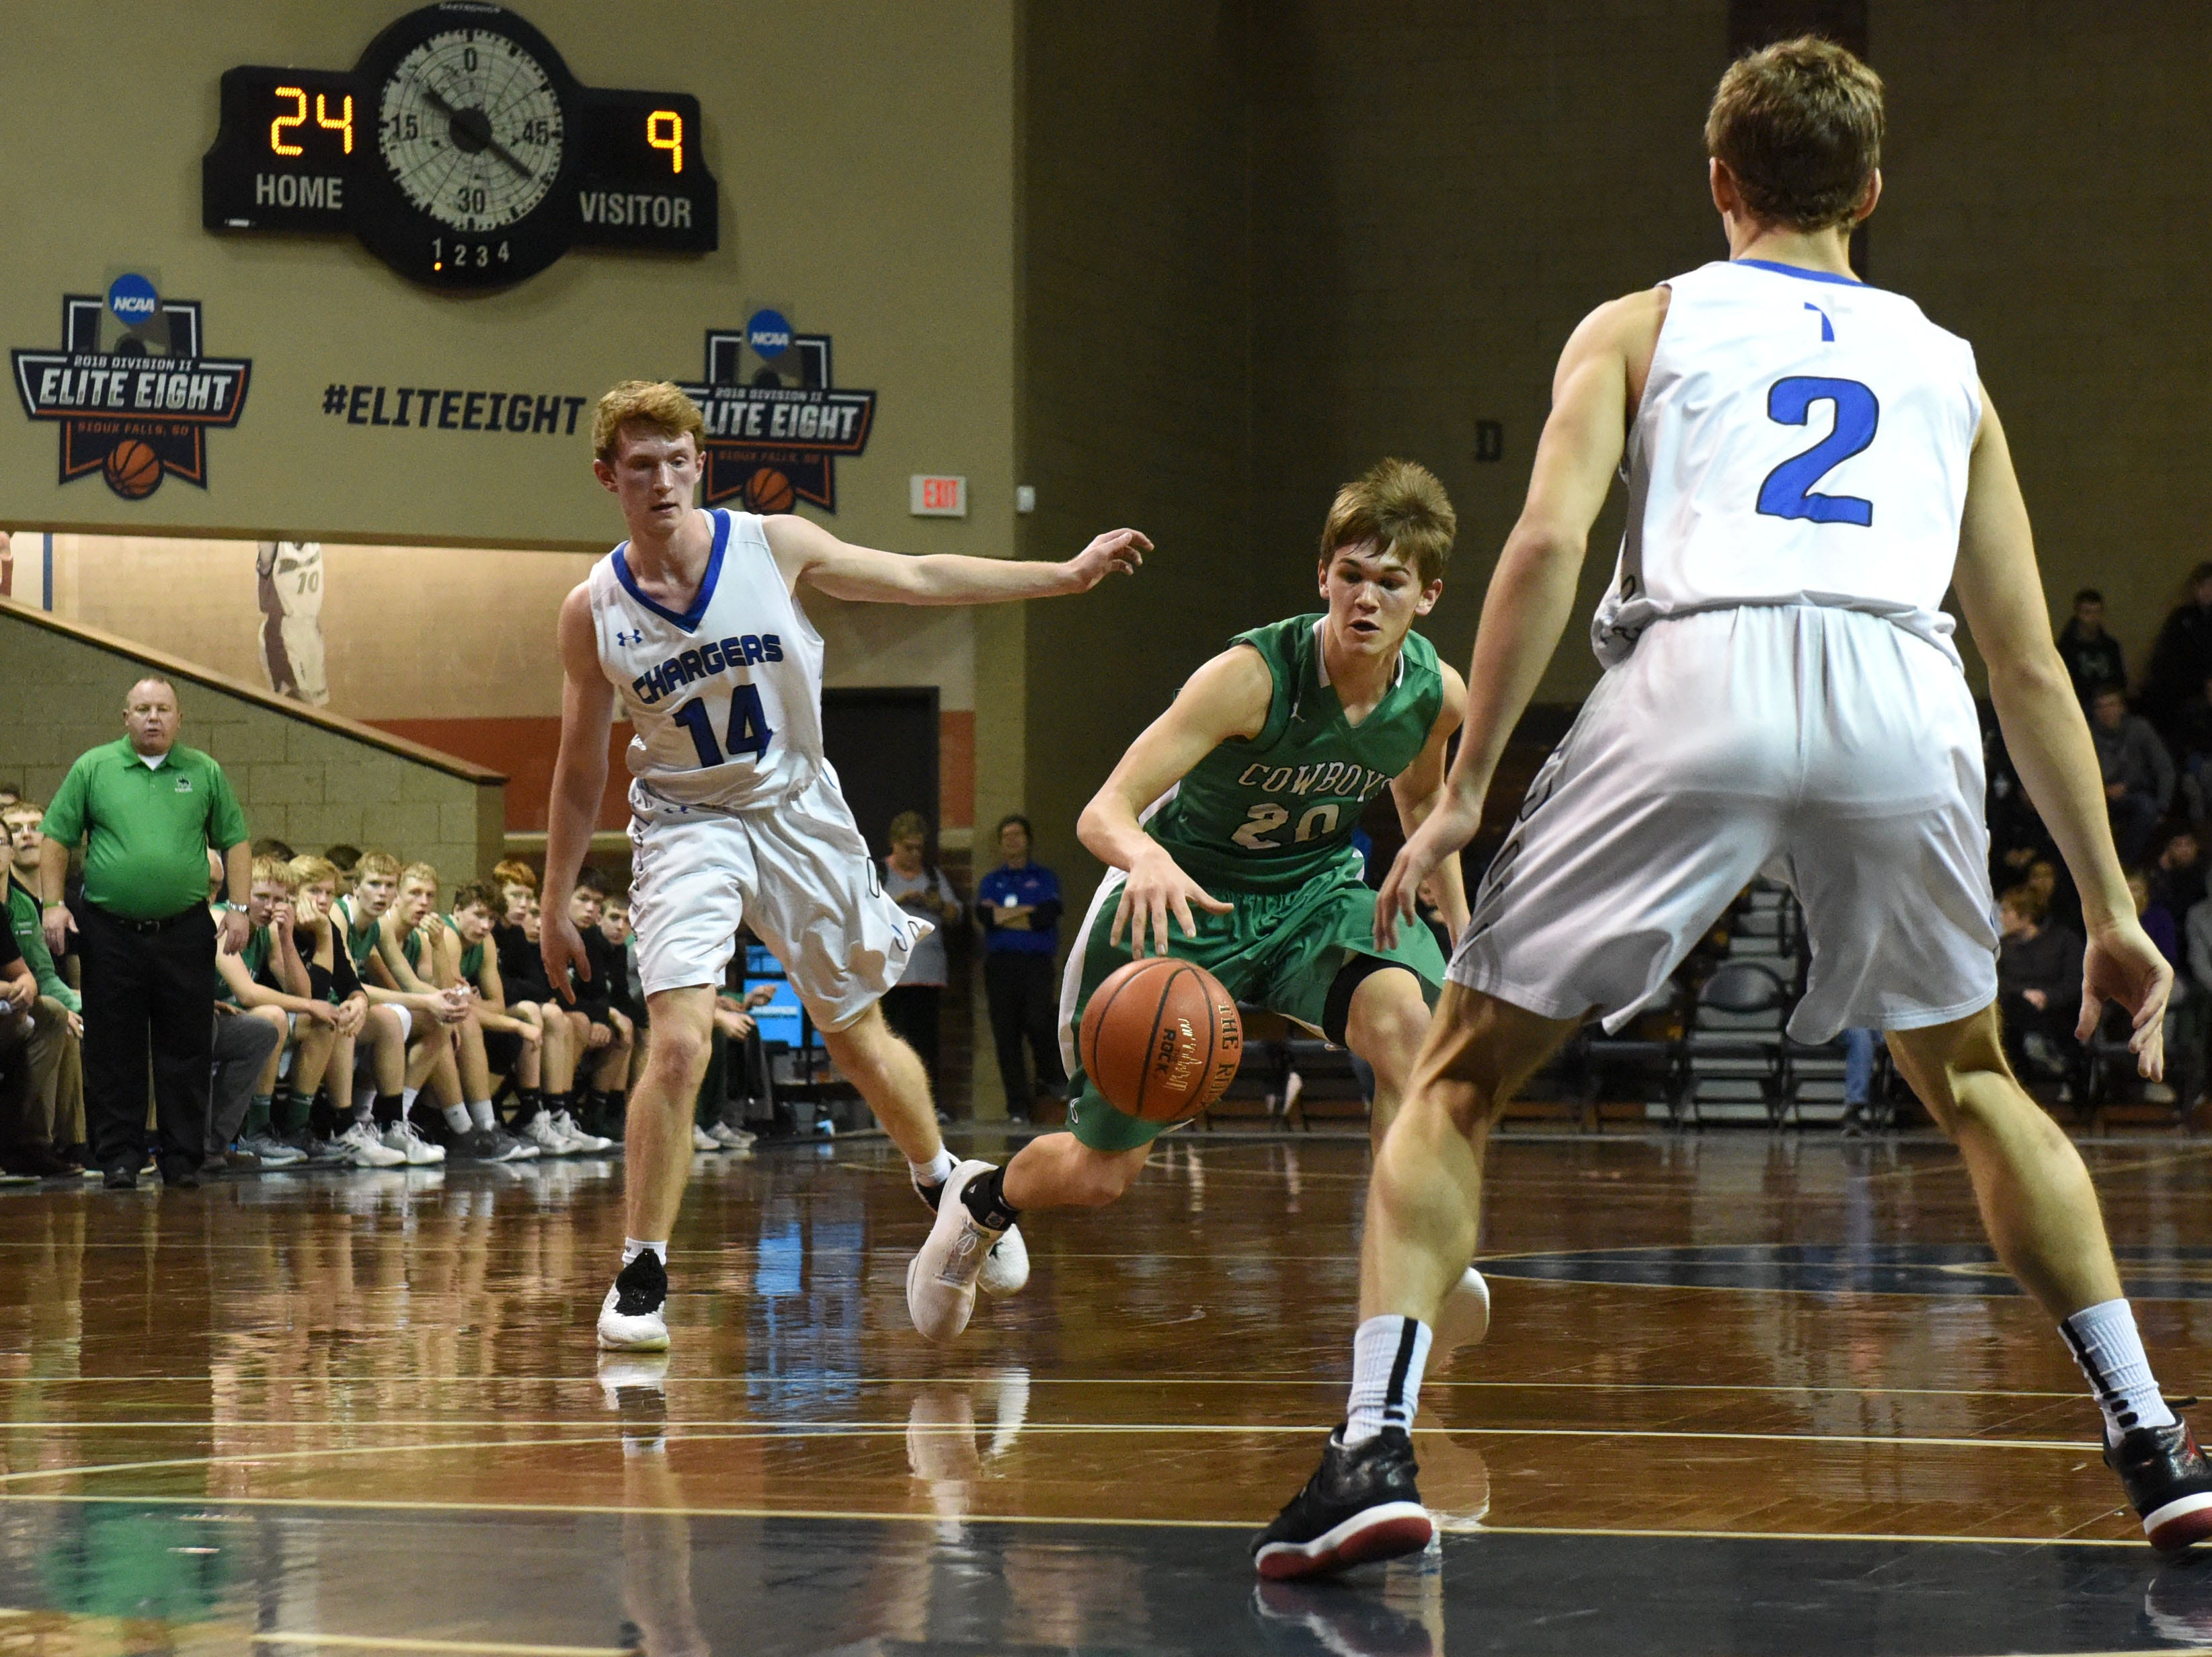 Breckenridge's Max Johnson (20) dribbles the ball past Sioux Falls Christian players at the Hoop City Classic at the Sanford Pentagon in Sioux Falls, S.D., Saturday, Dec. 29, 2018.